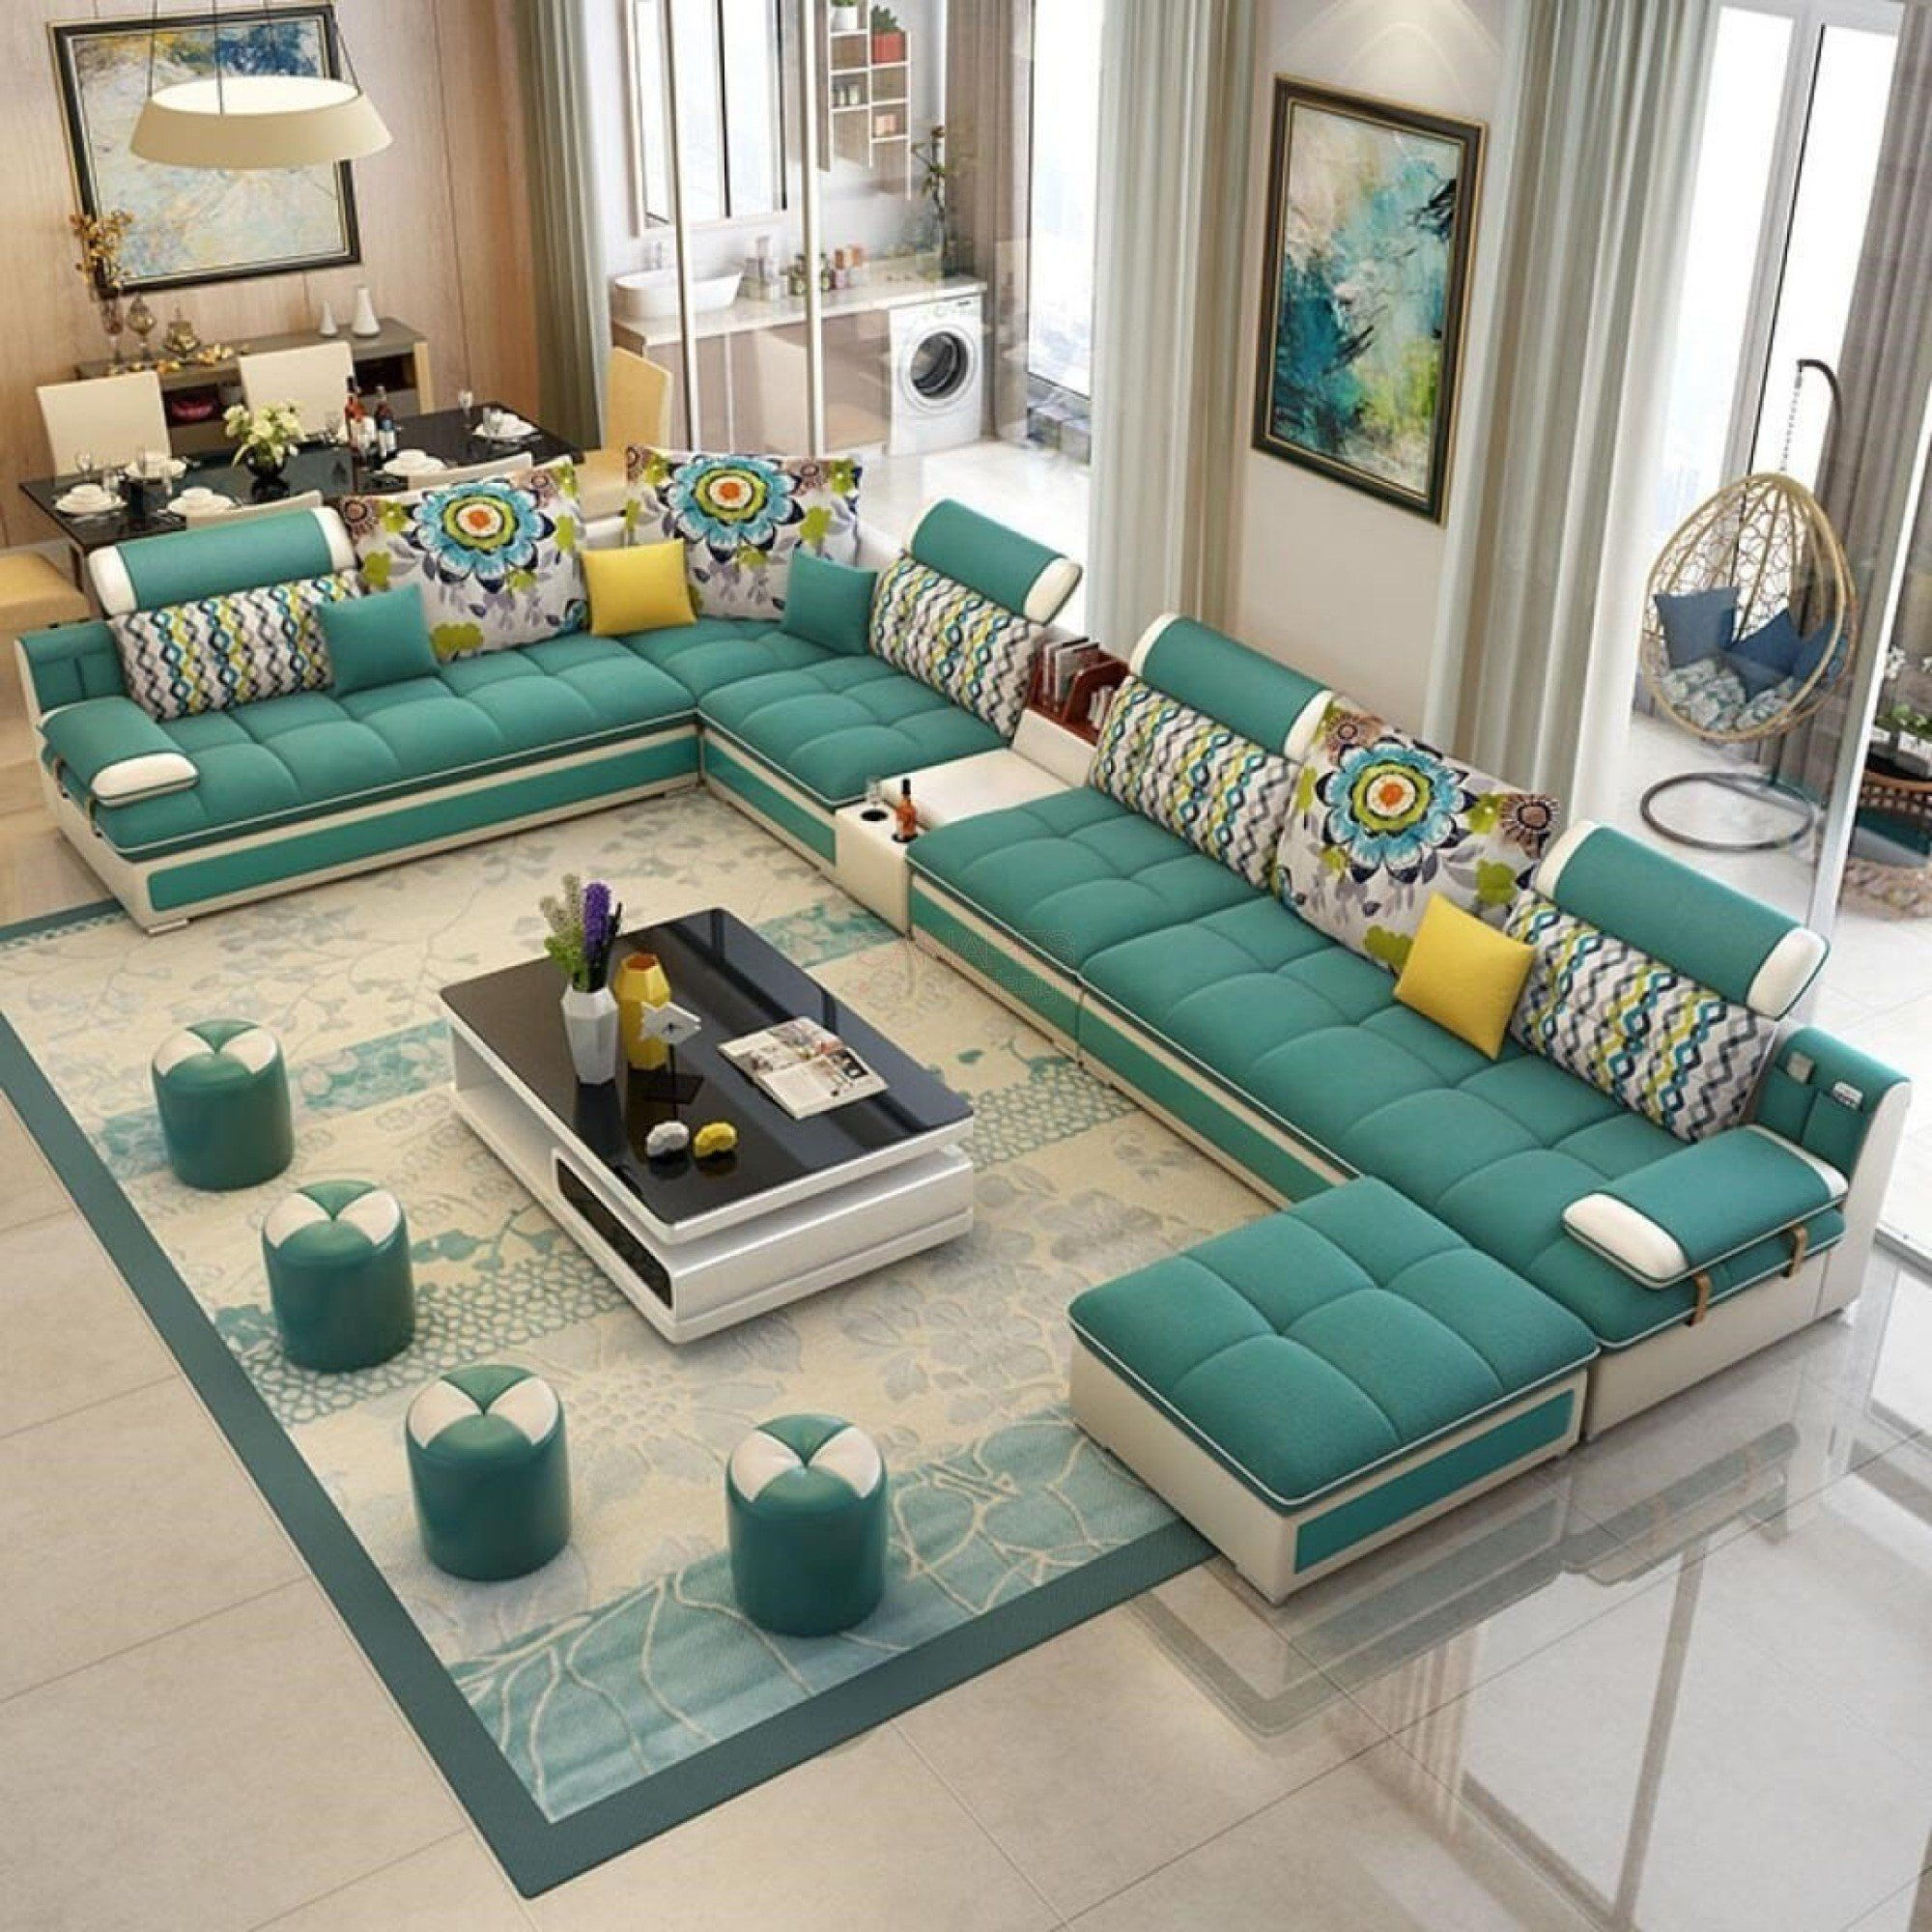 خبير الحيض يلهث sofa set design - psidiagnosticins.com